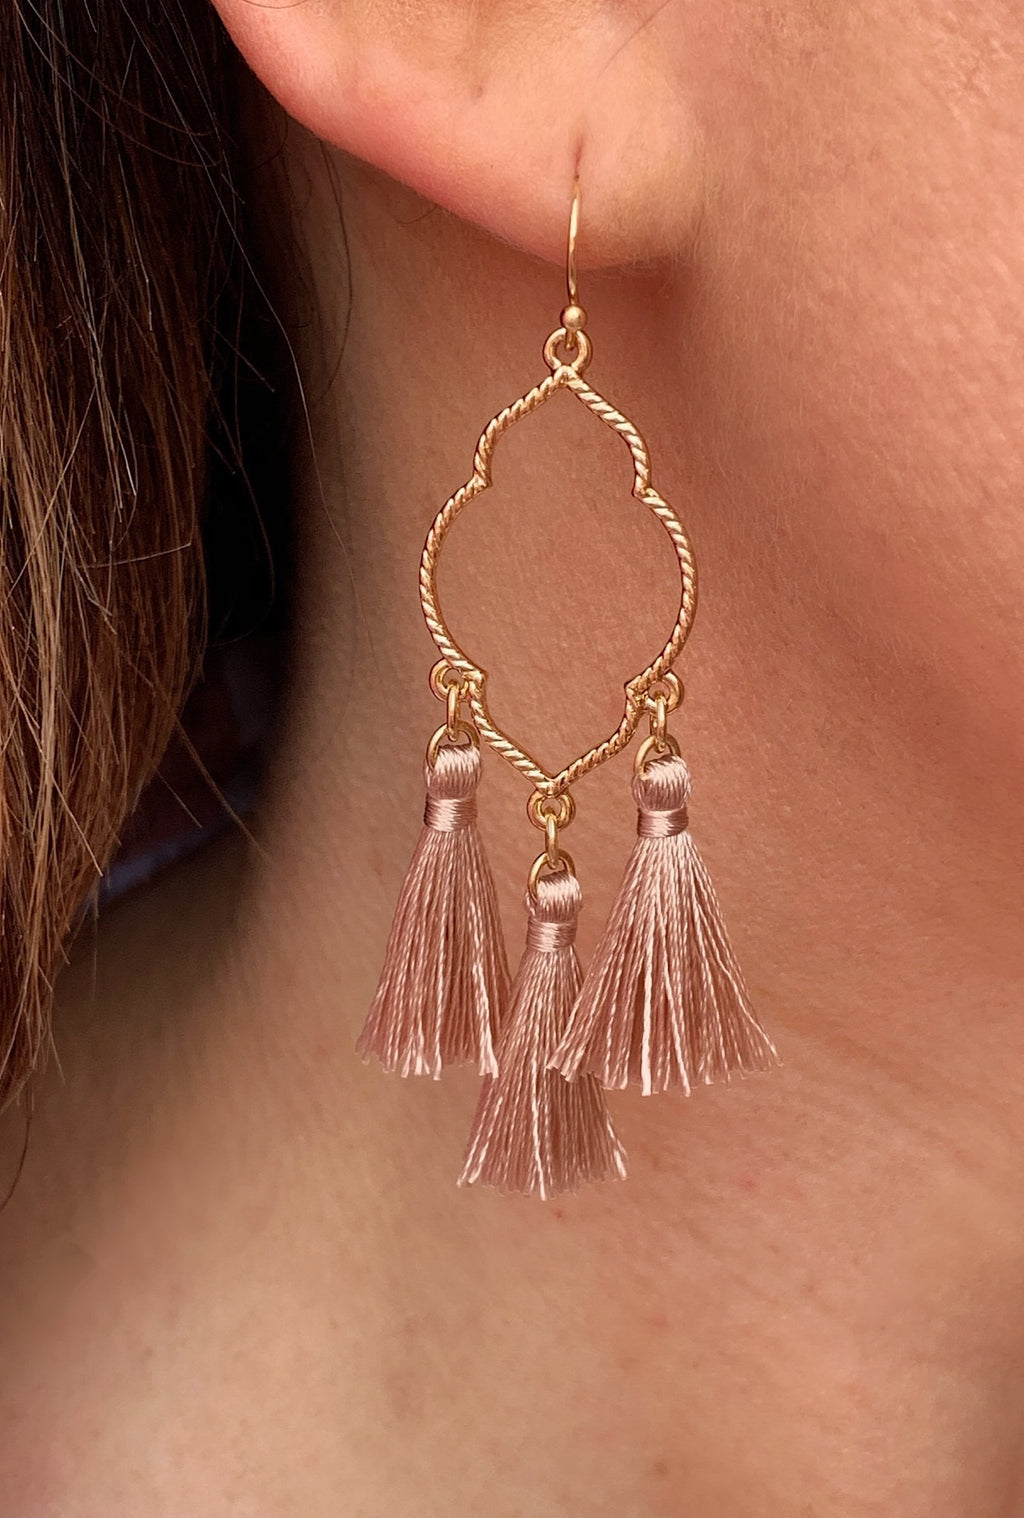 Rose Gold Tassel Earrings - Bellamie Boutique